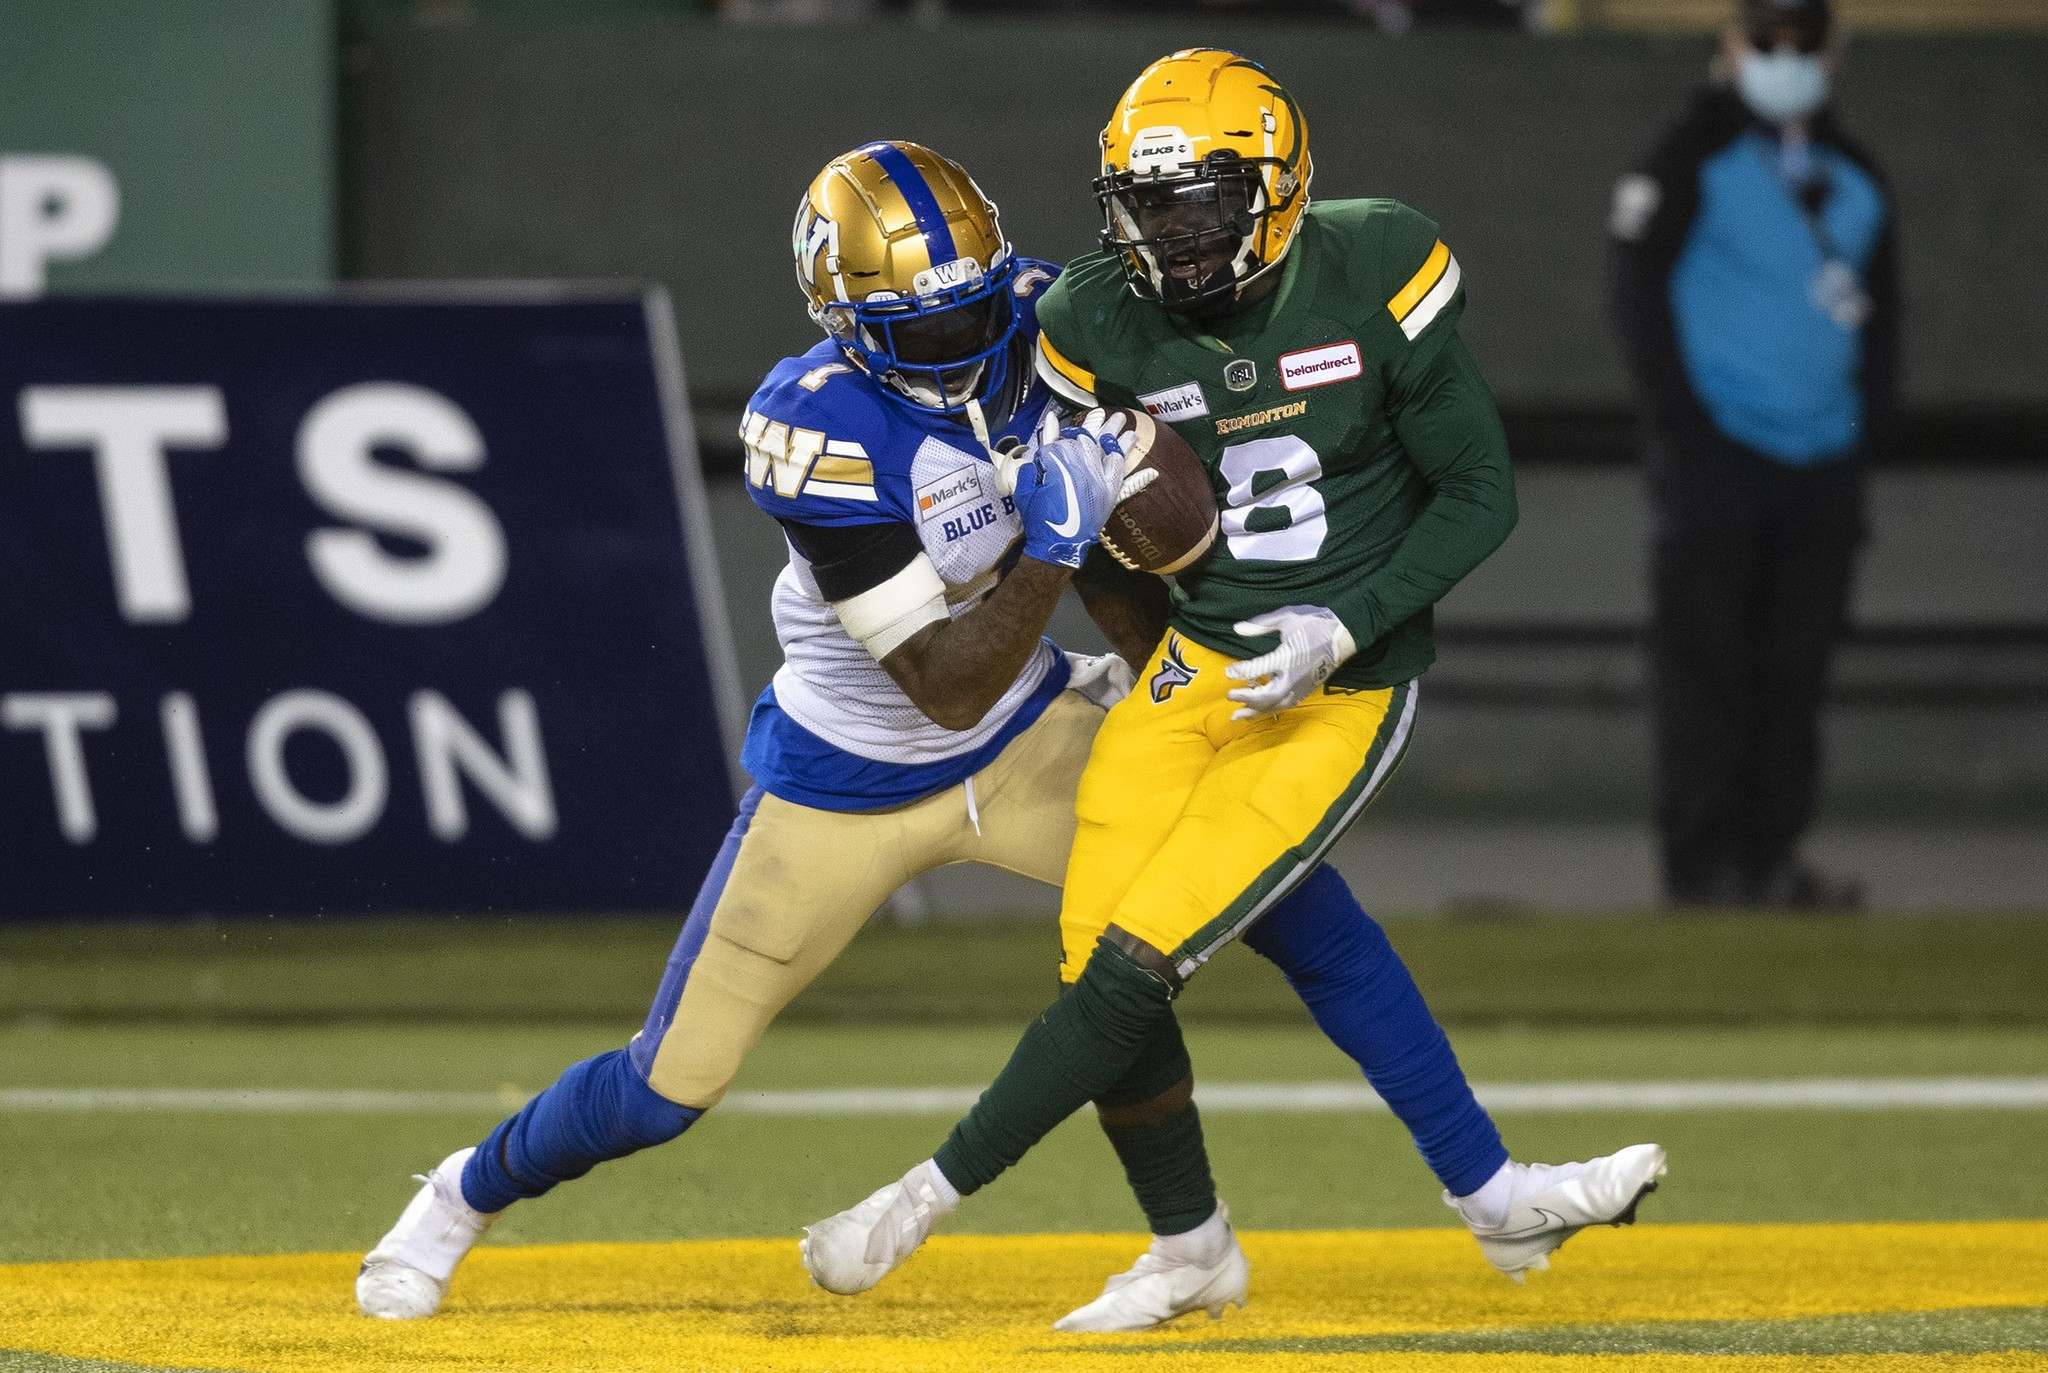 Bomber QB Zach Collaros connected with Darvin Adams for a touchdown and a two-point convert against the Elks. (Jason Franson / The Canadian Press files)</p>